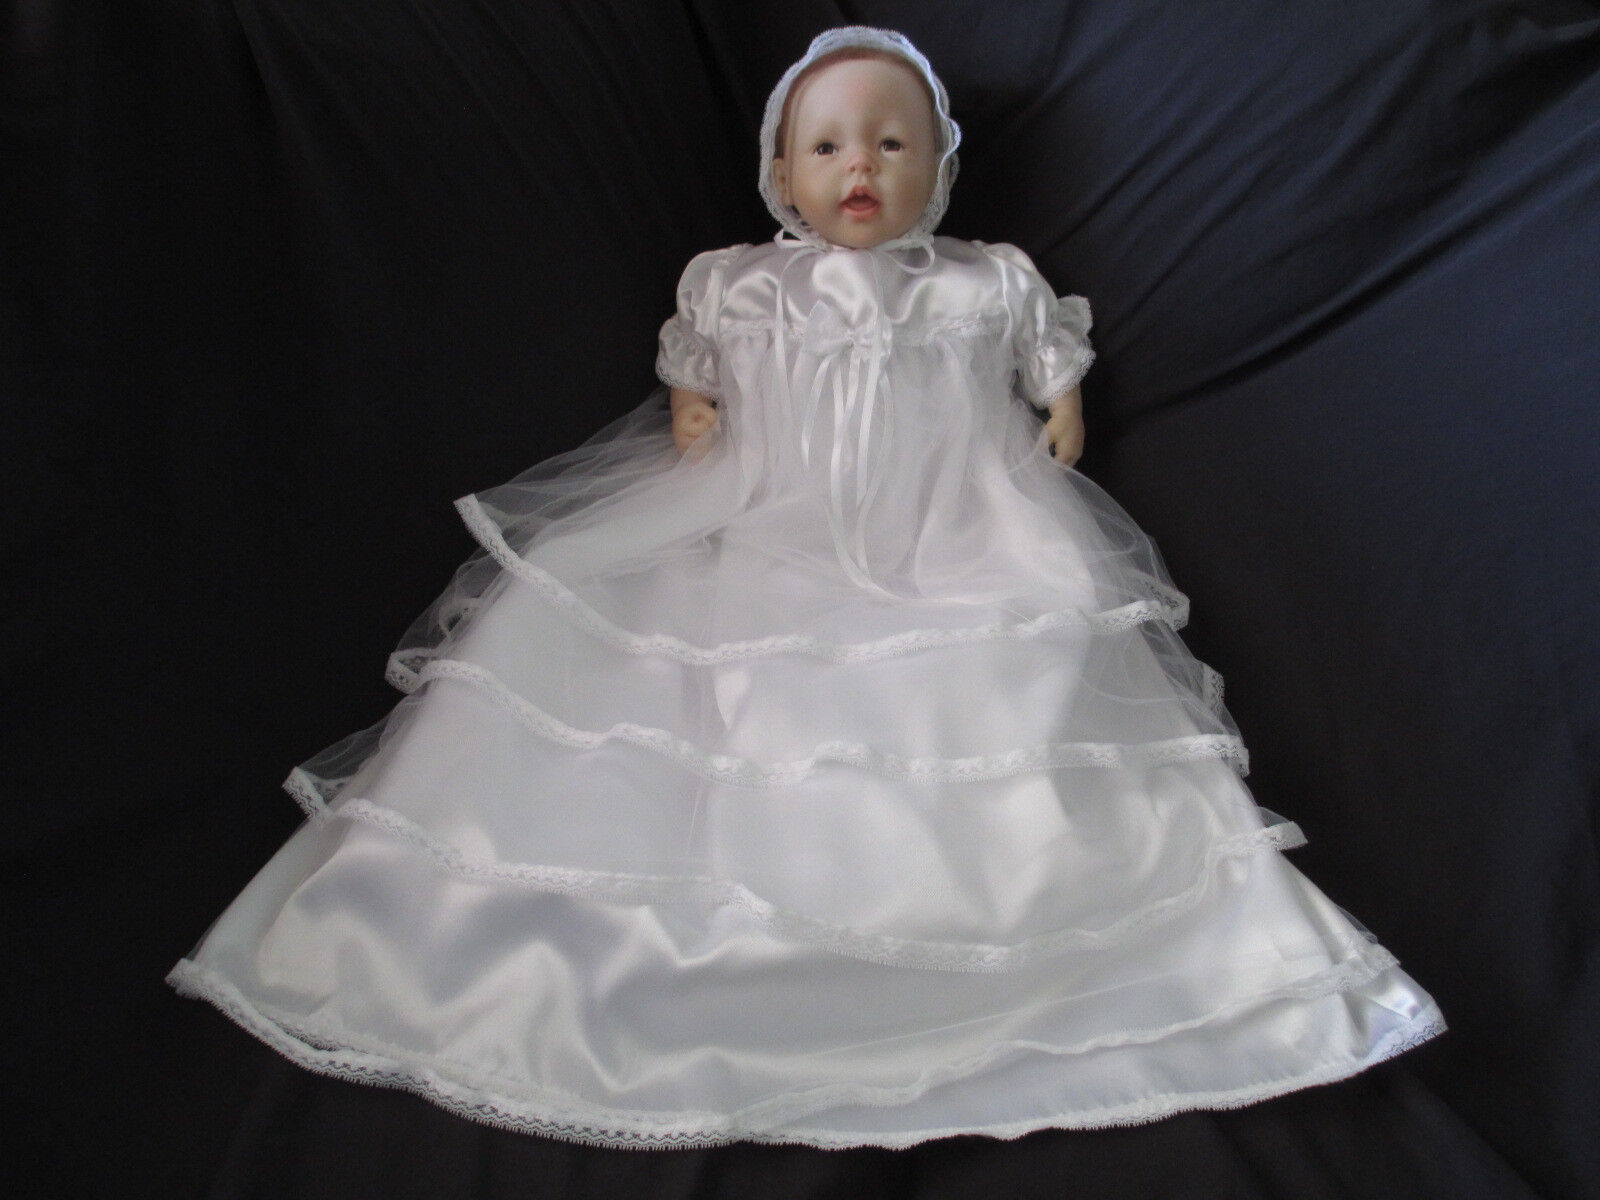 Baby Girls White Satin Tulle Christening Gown Baptism